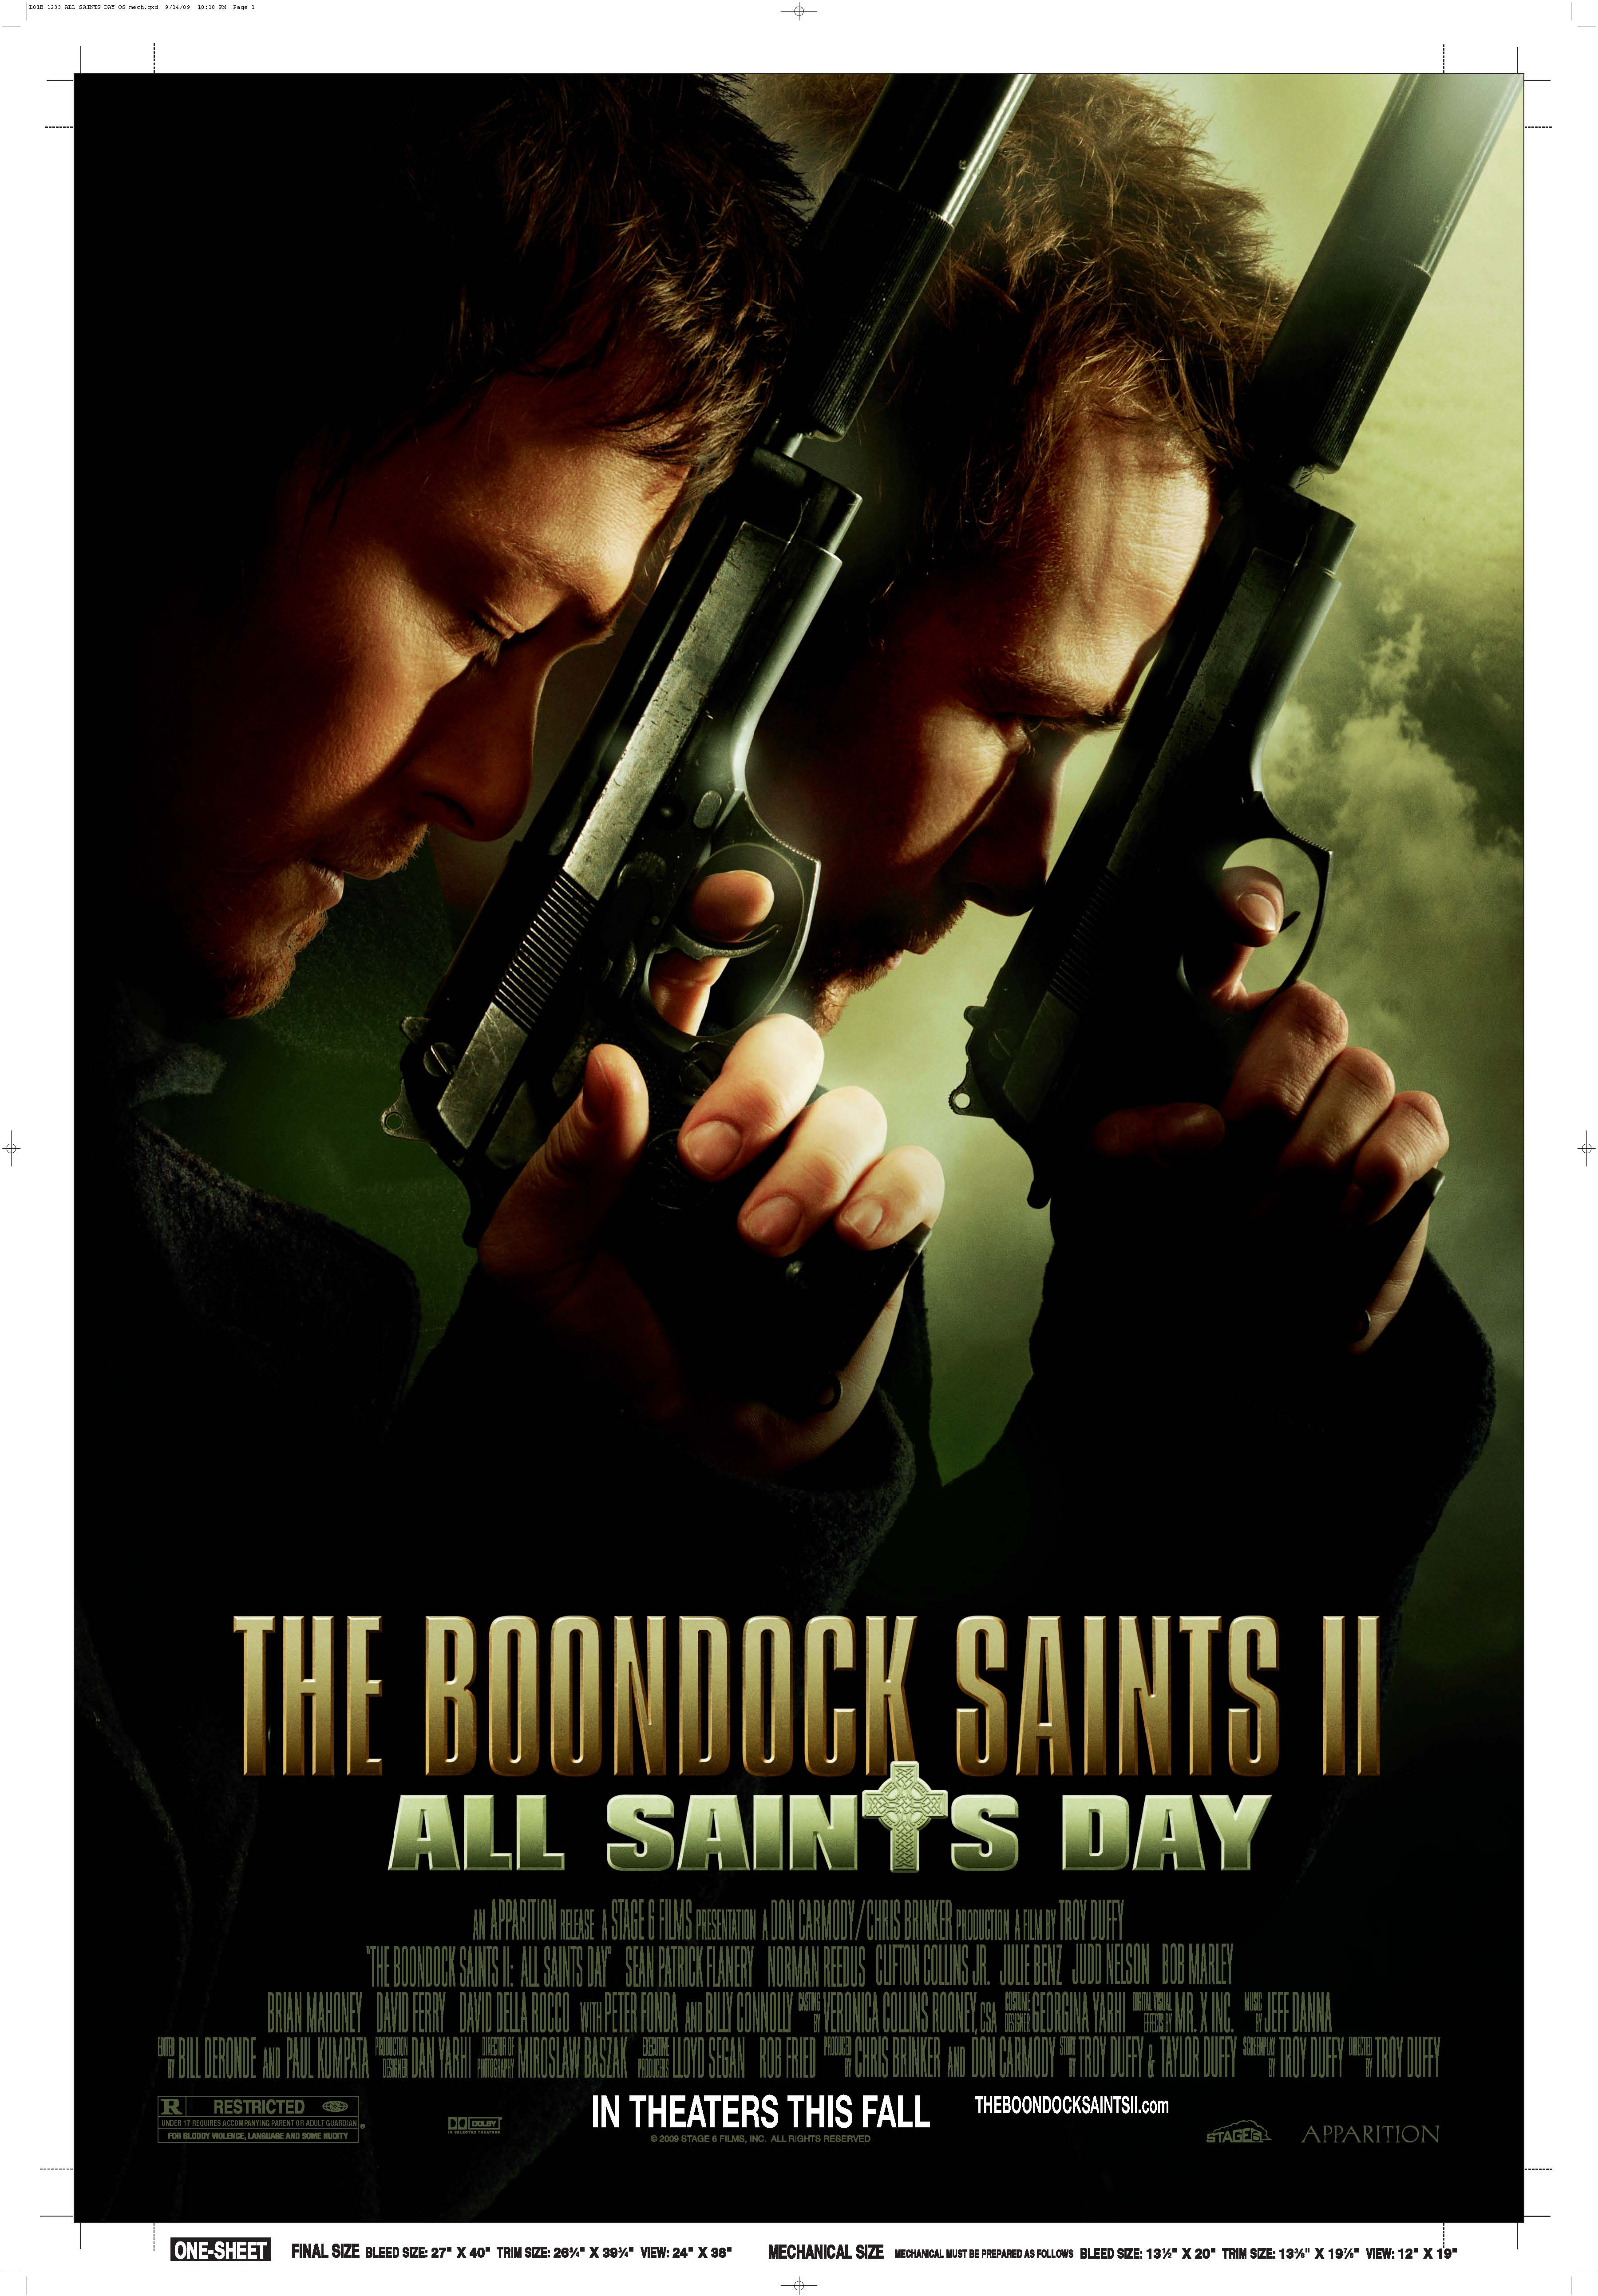 Boondock Saints Poster